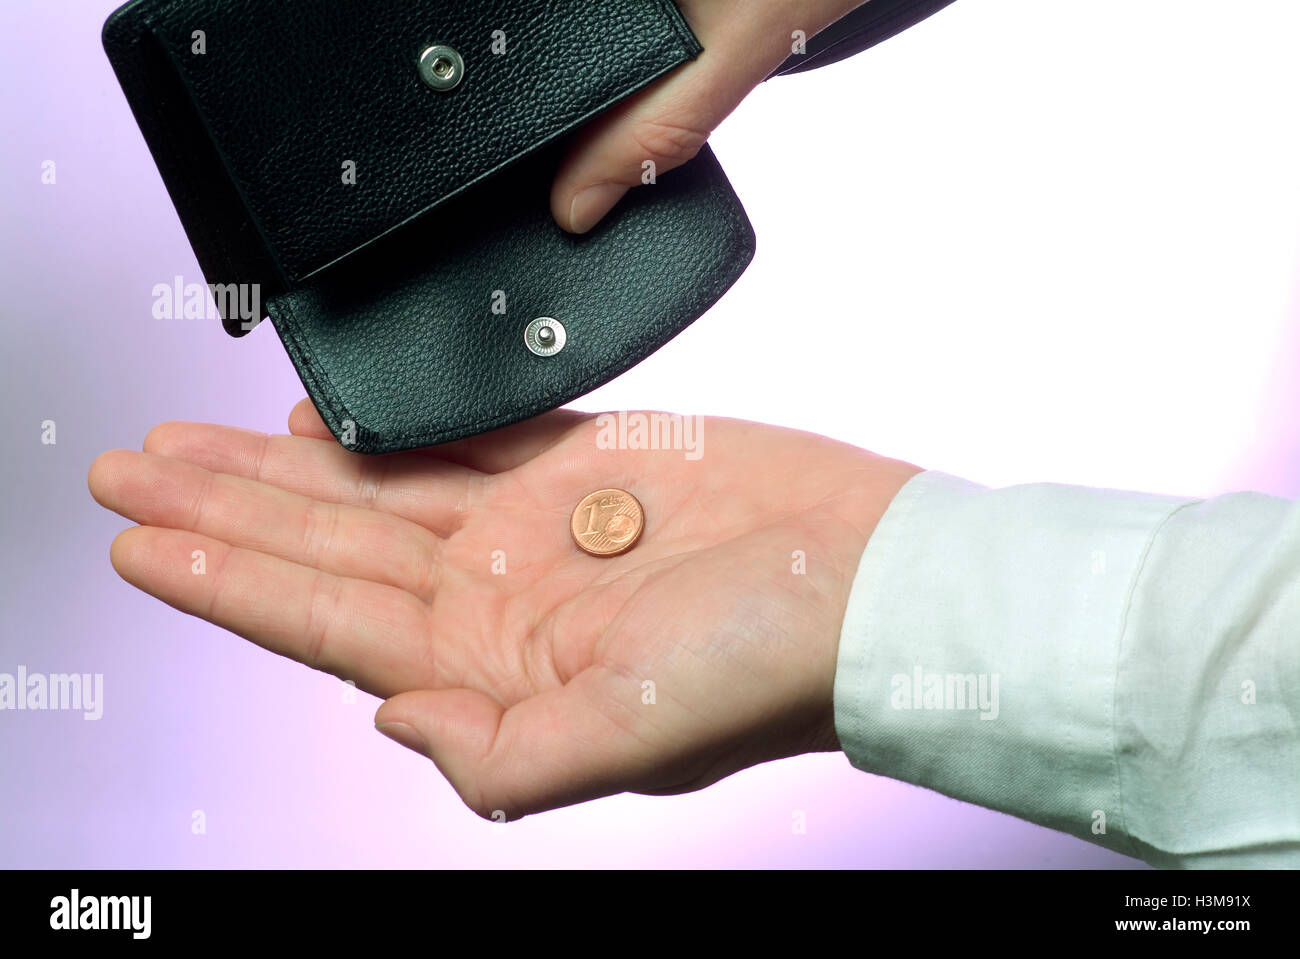 Wallet with hand and one last coin - Stock Image